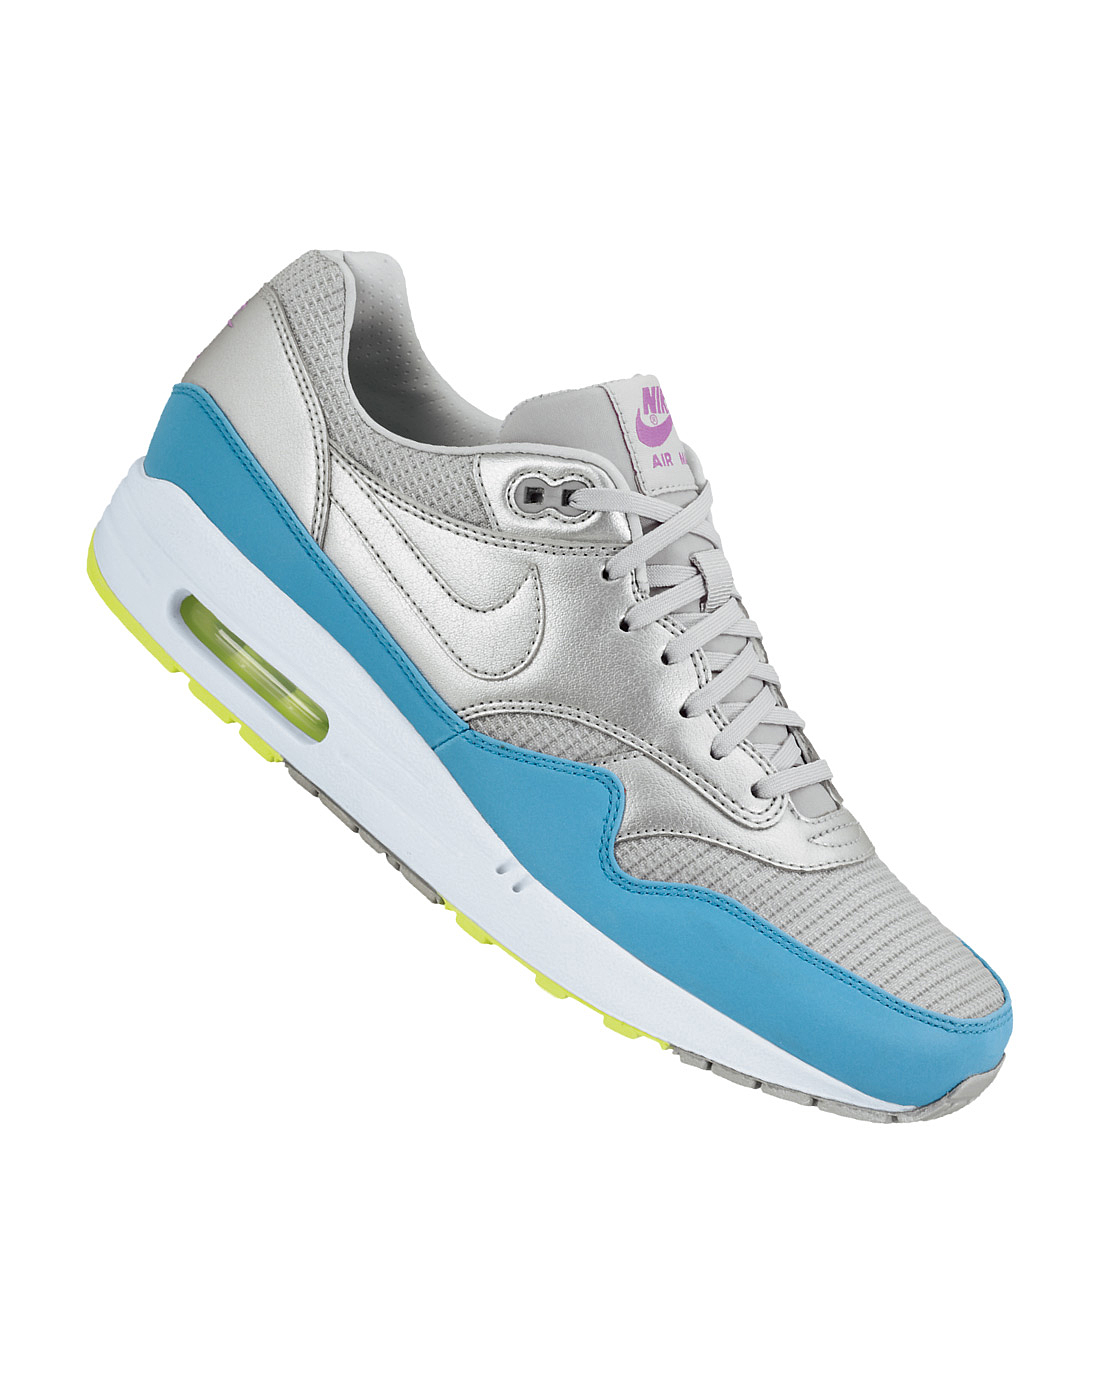 designer fashion aed63 f7898 Click here for more pics and info… └ Tags  air max 1, am1, nike